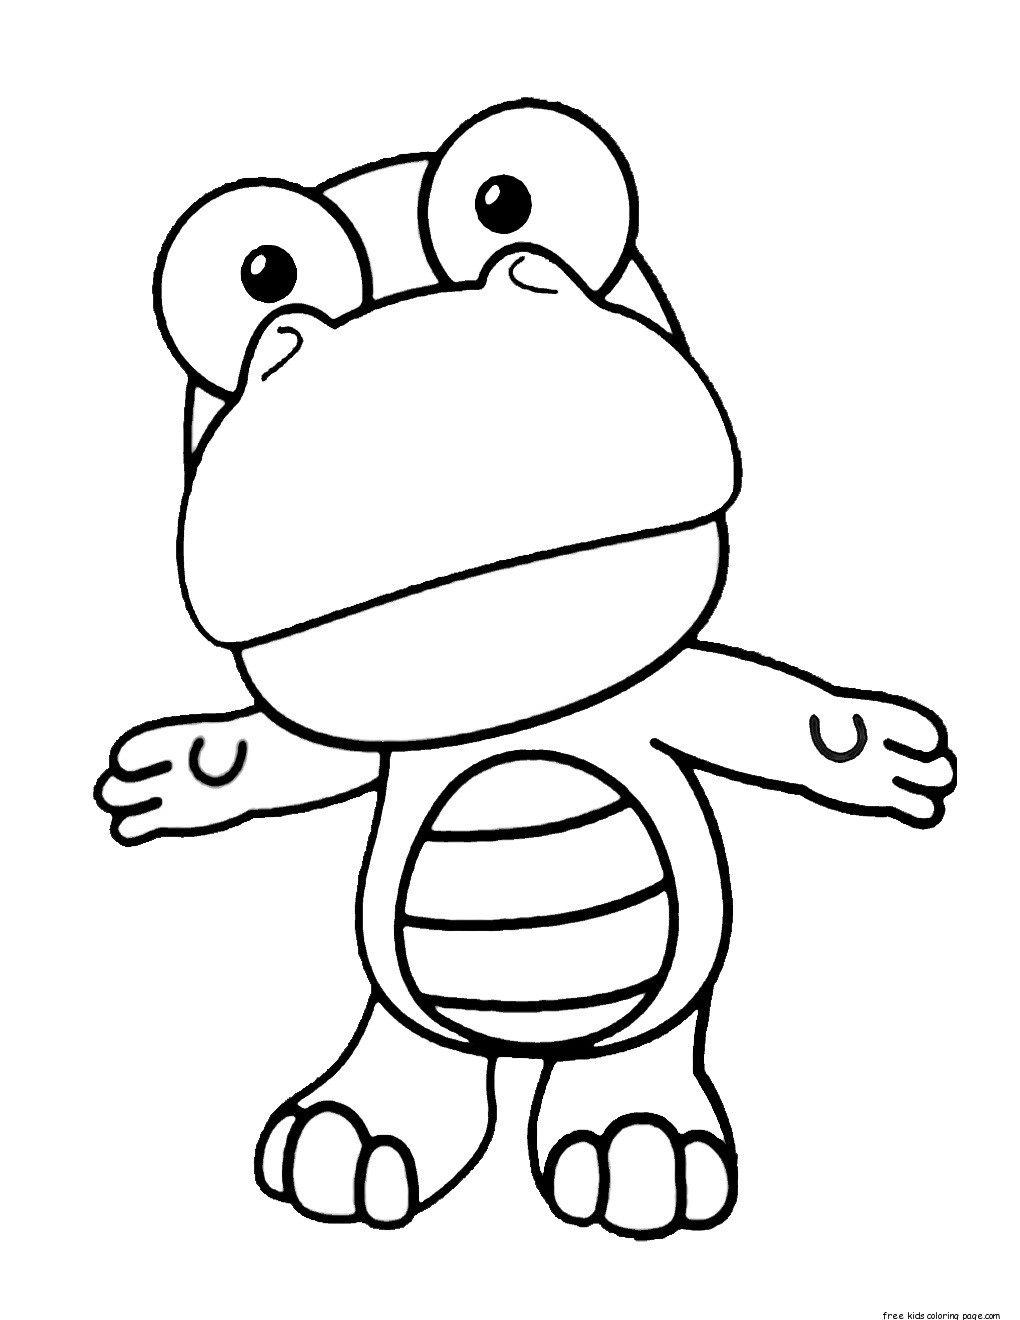 Printable Disney Pororo the Little Penguin Crong coloring ... A Coloring Page